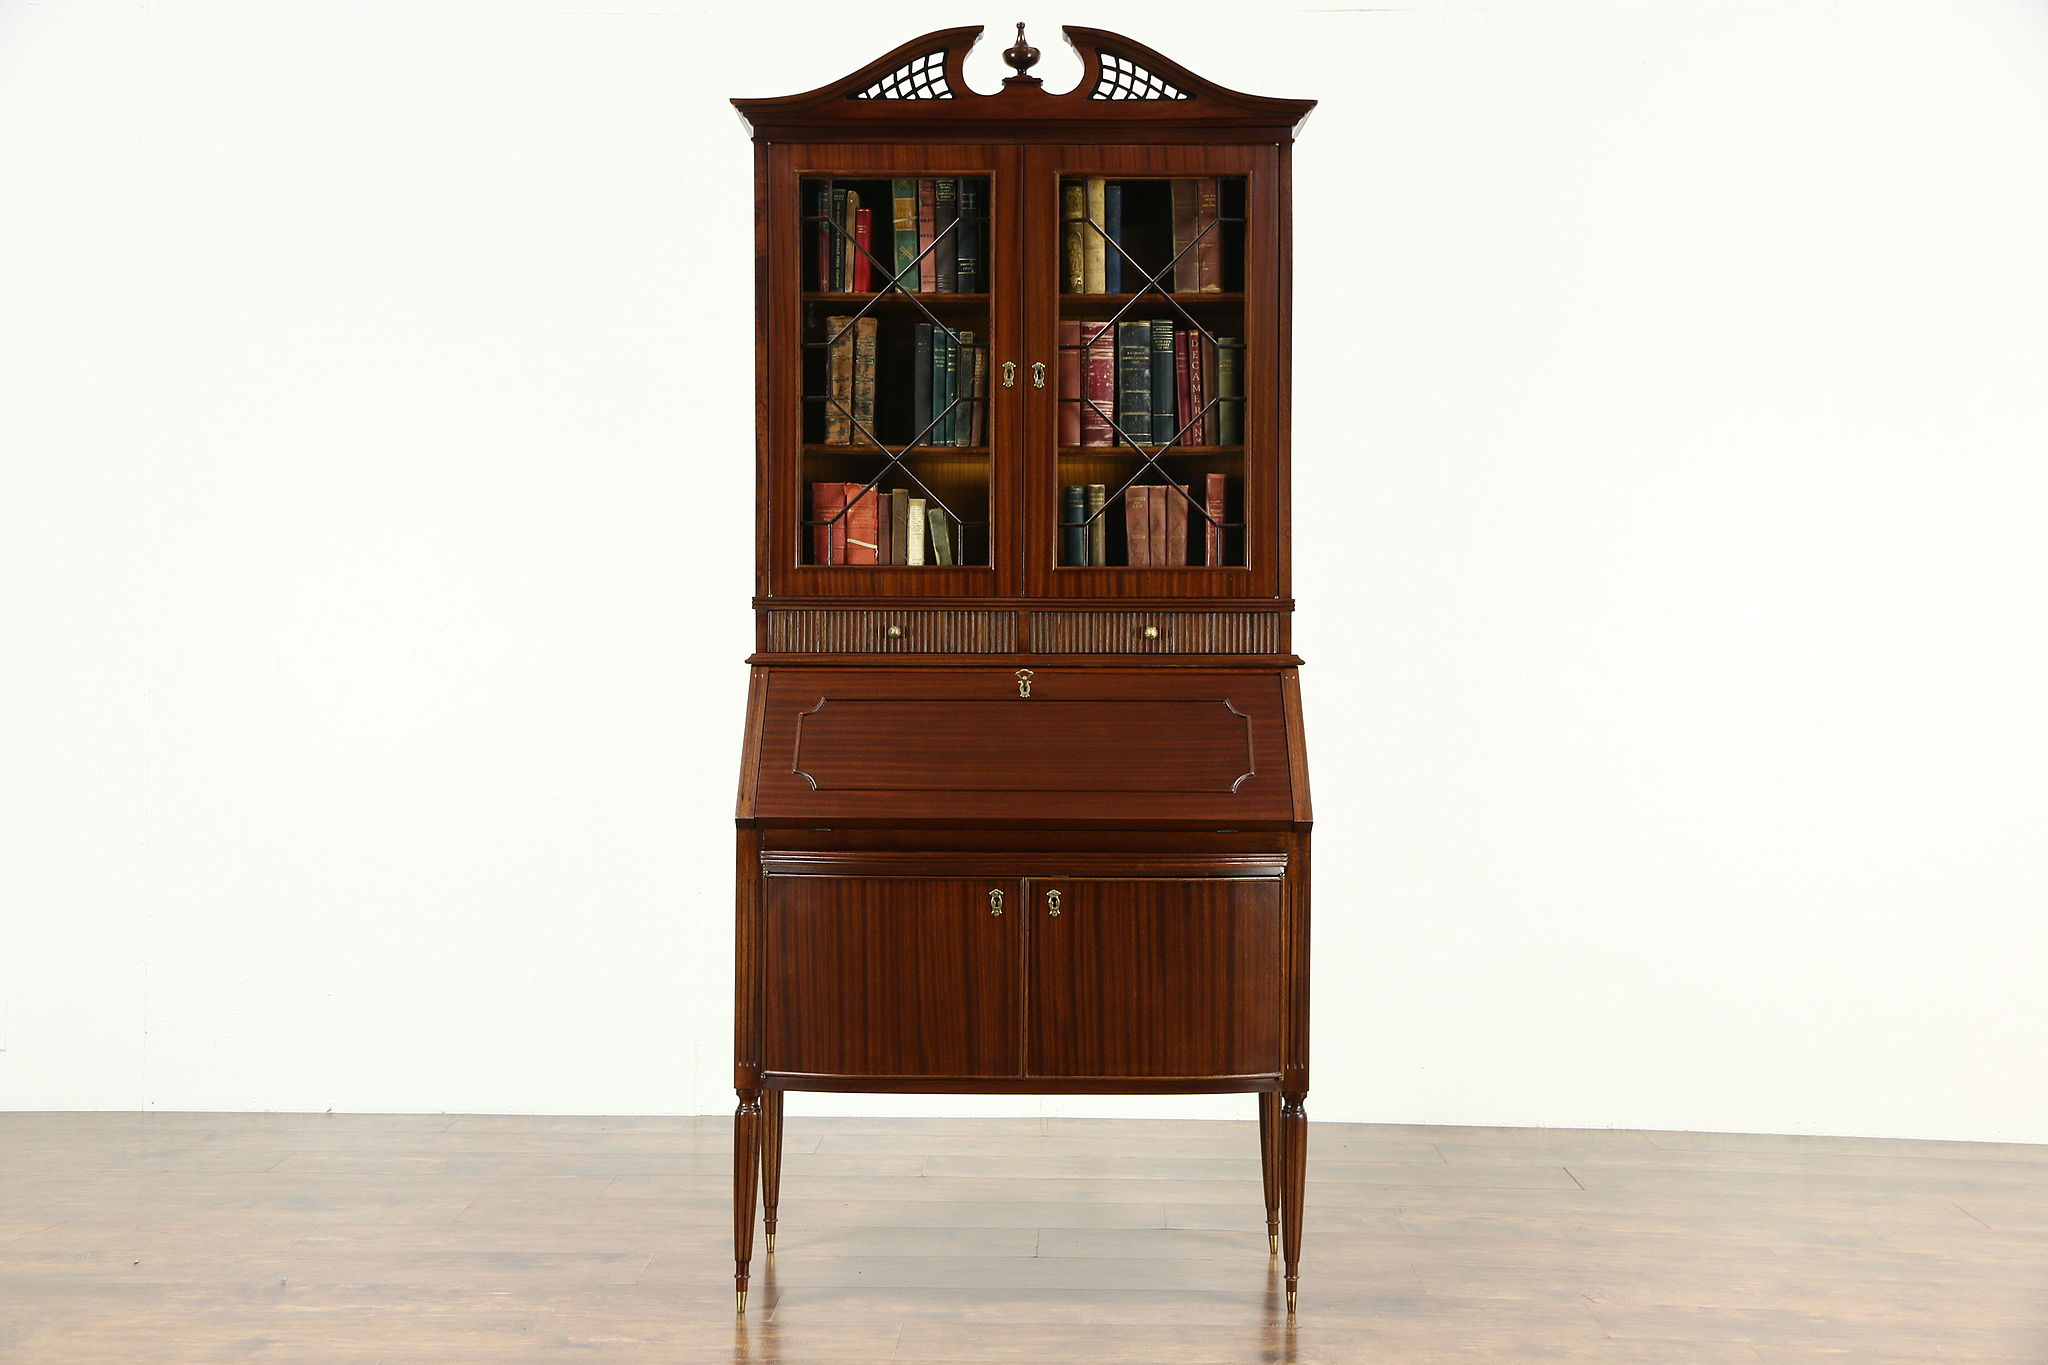 for v the desk my regarding information secretary looking antique and make furniture vintage age collection